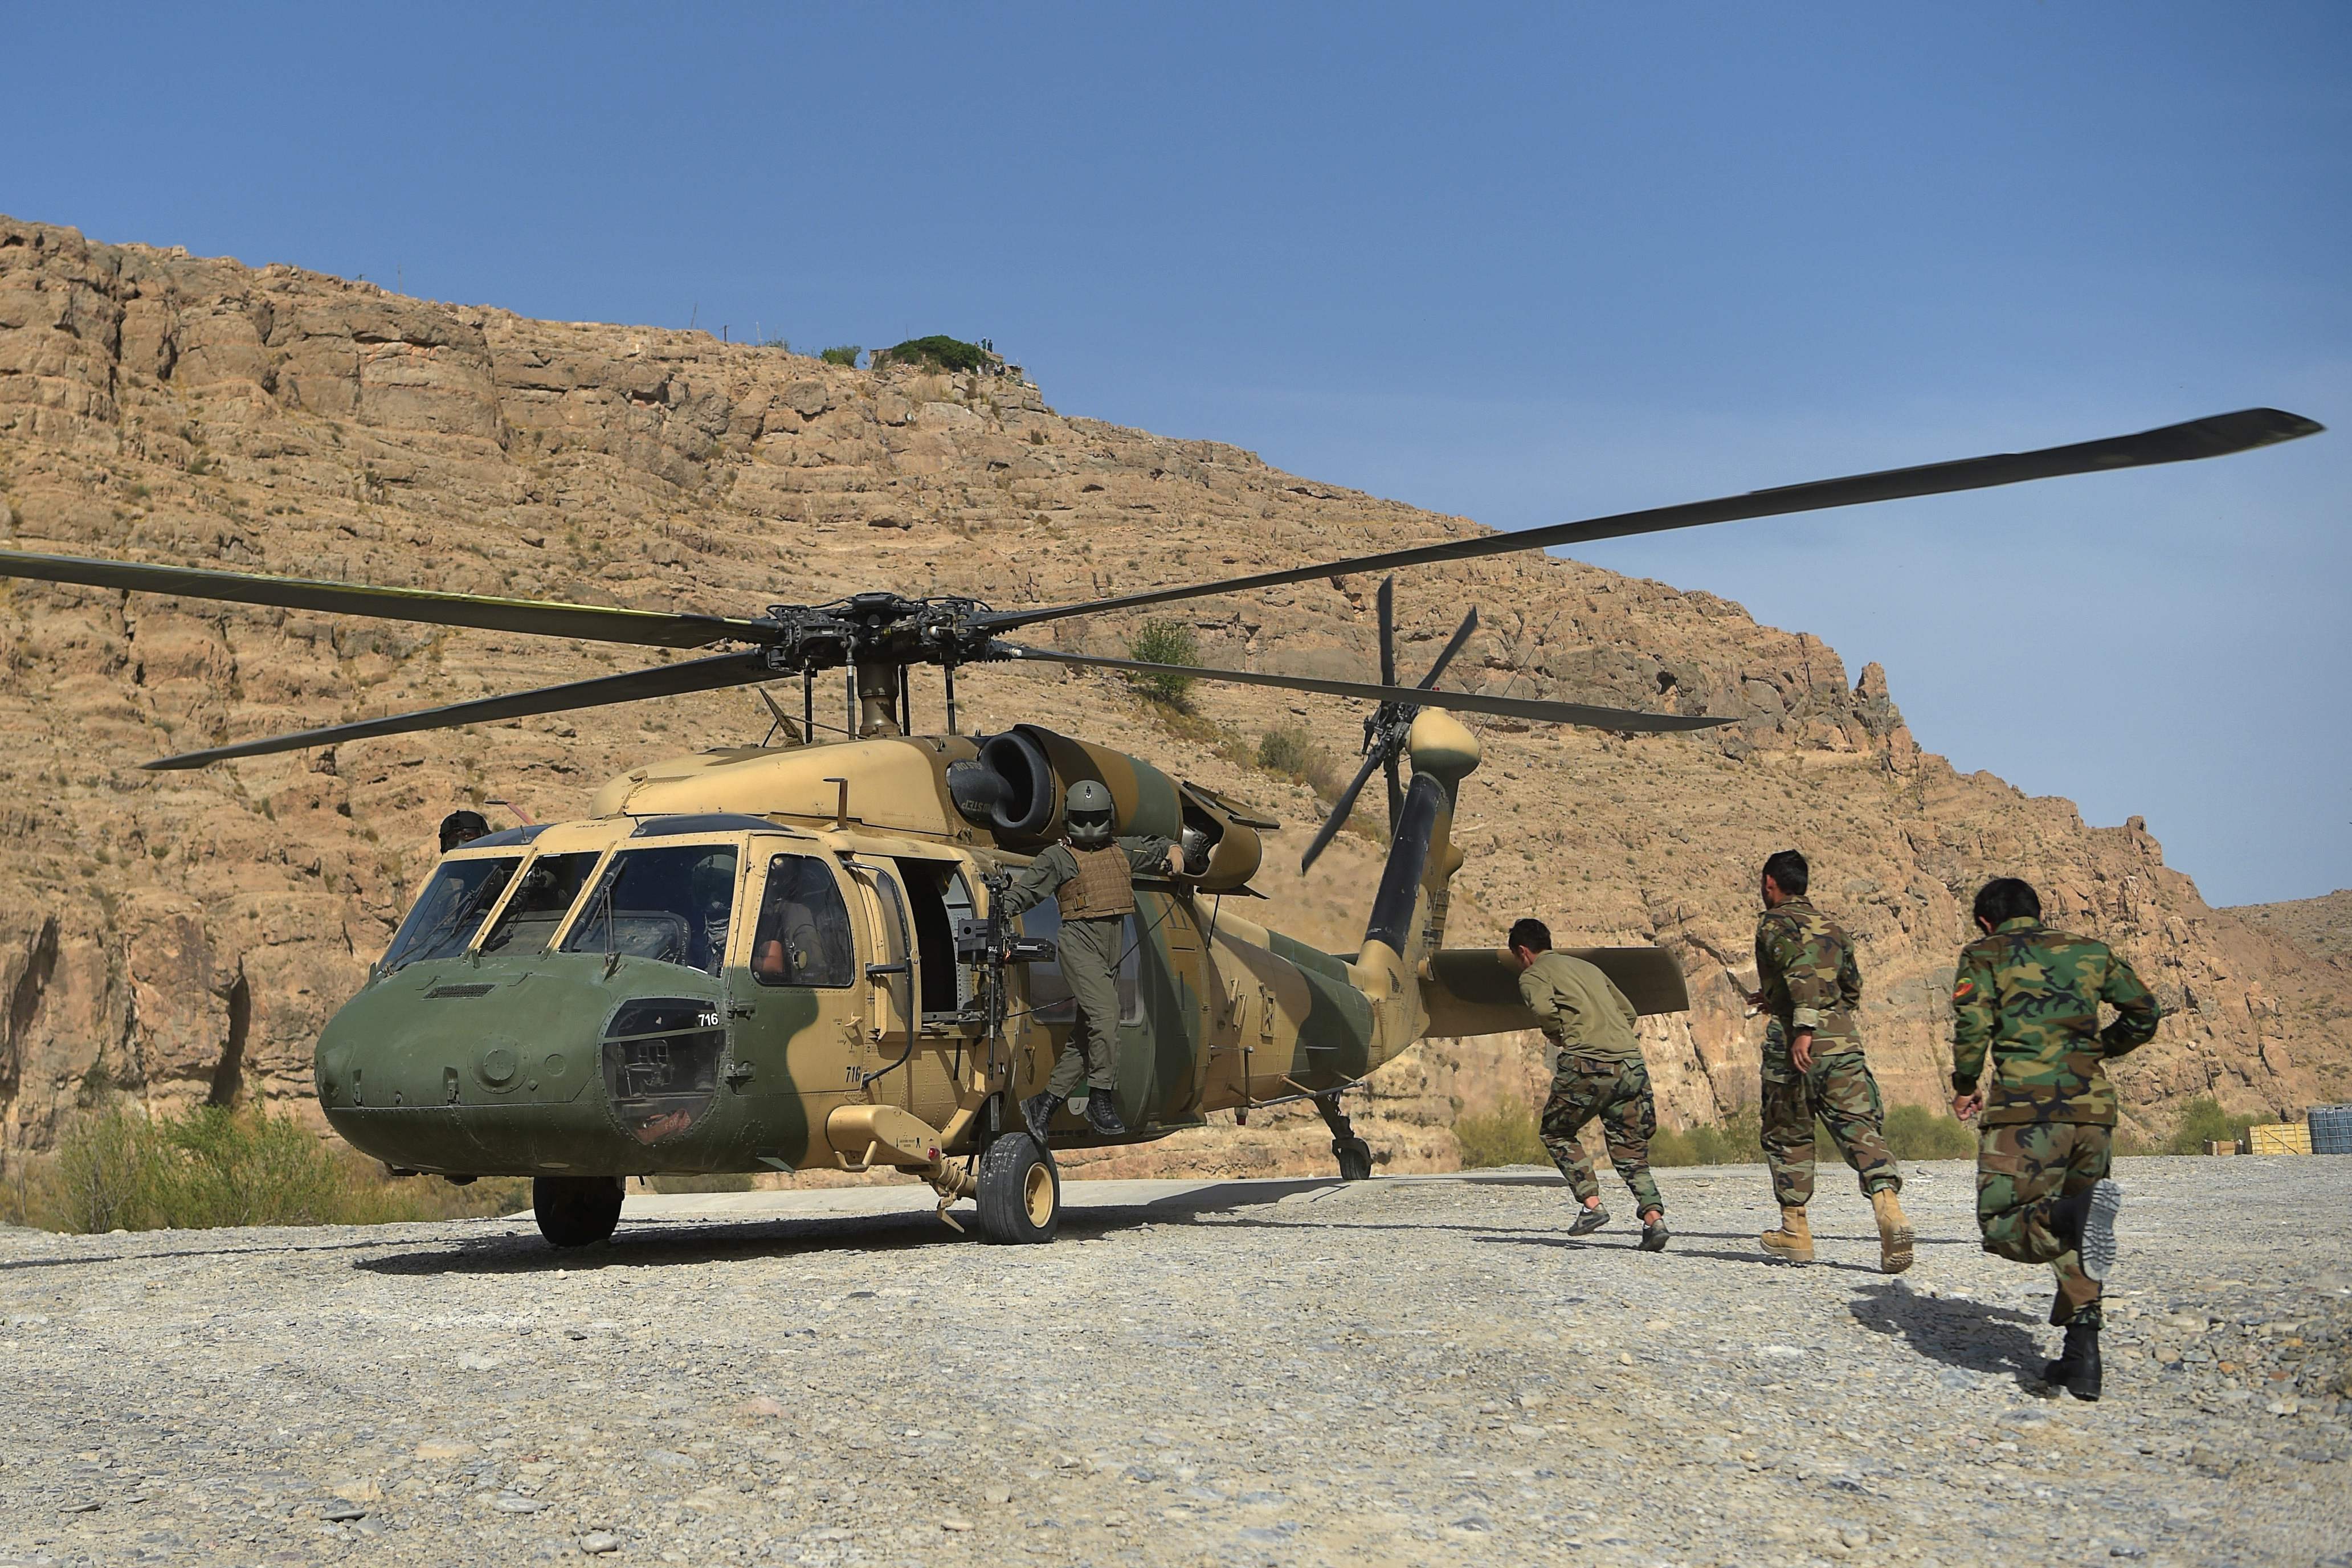 White House: Taliban has some US military supplies given to Afghans